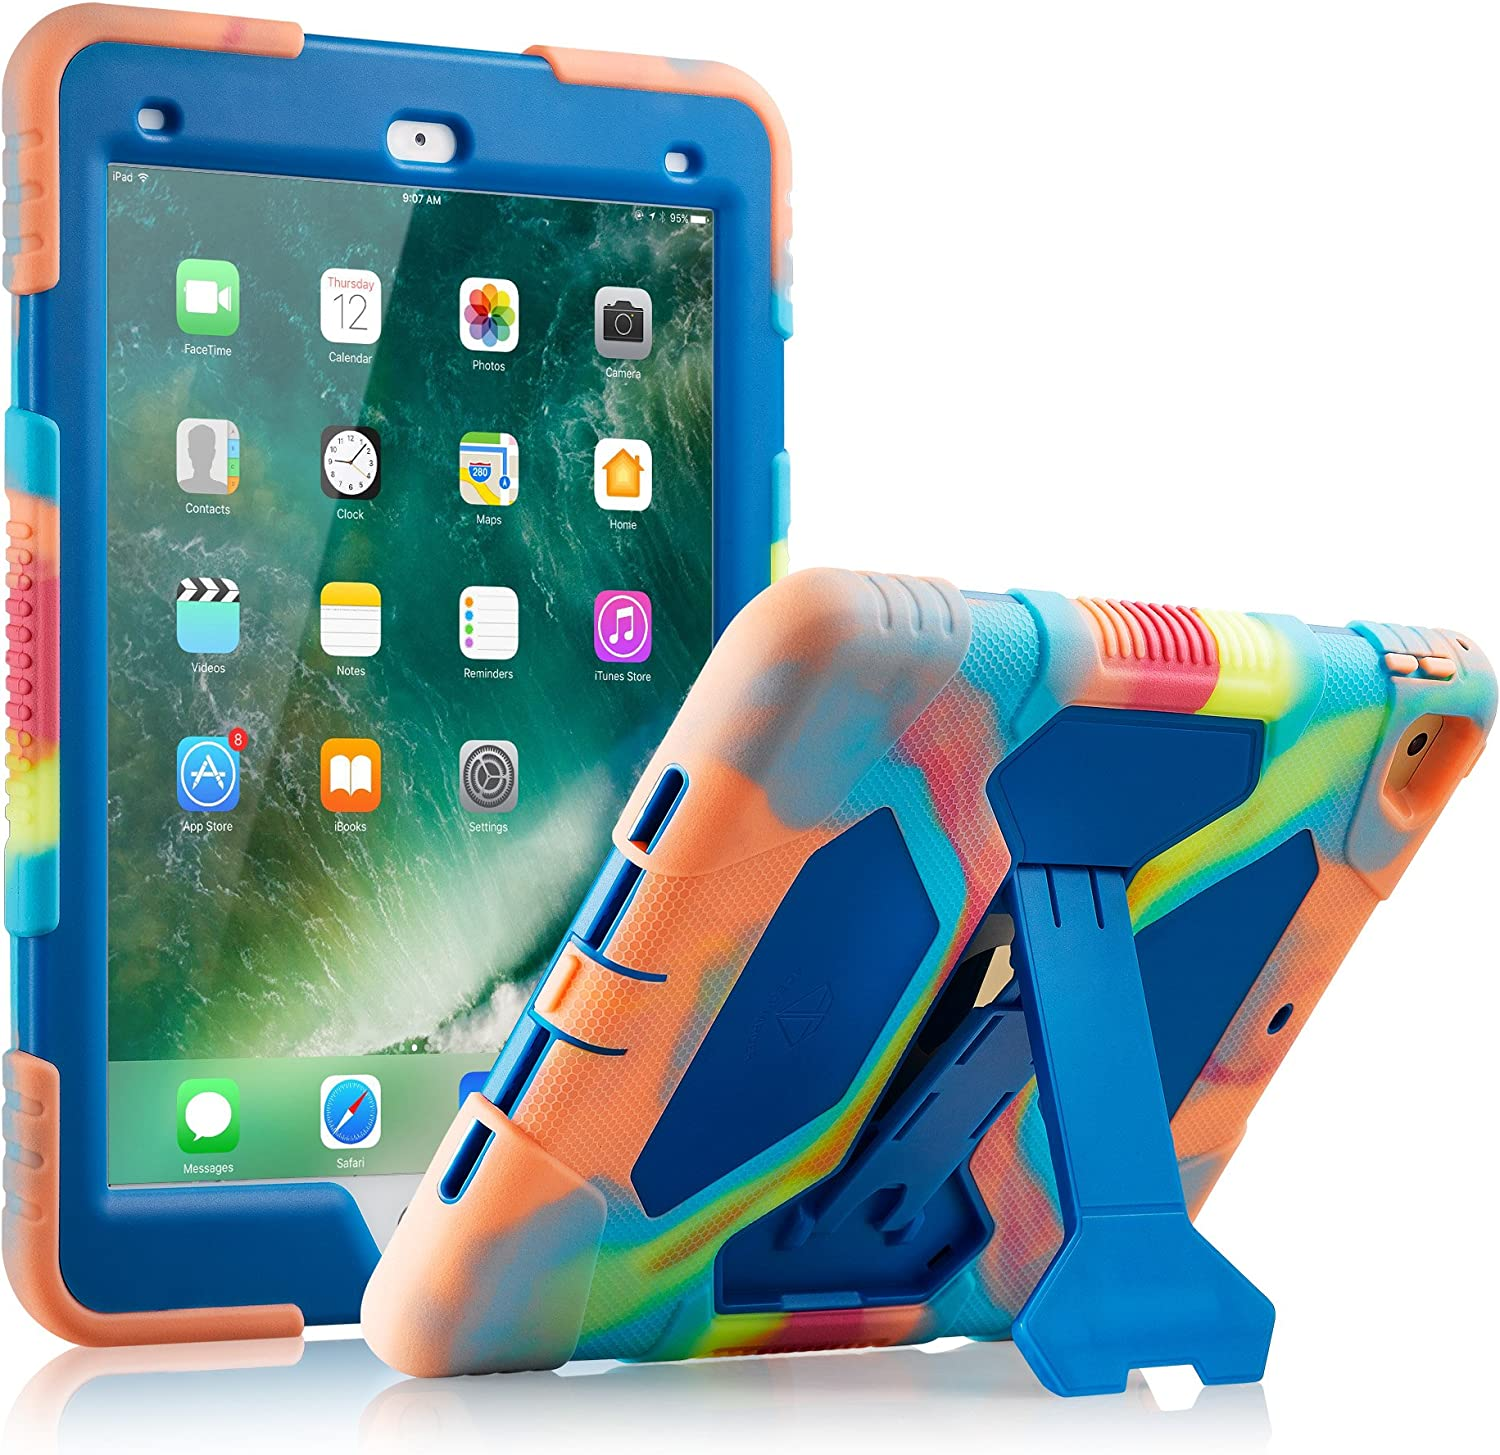 iPad Air 2 Case (2014 Release) ACEGUARDER Case for iPad Air 2 Generation Heavy Duty Shockproof Rugged Cover Adjustable Stand for iPad Air 2nd Gen A1566 A1567 (Ice Blue)